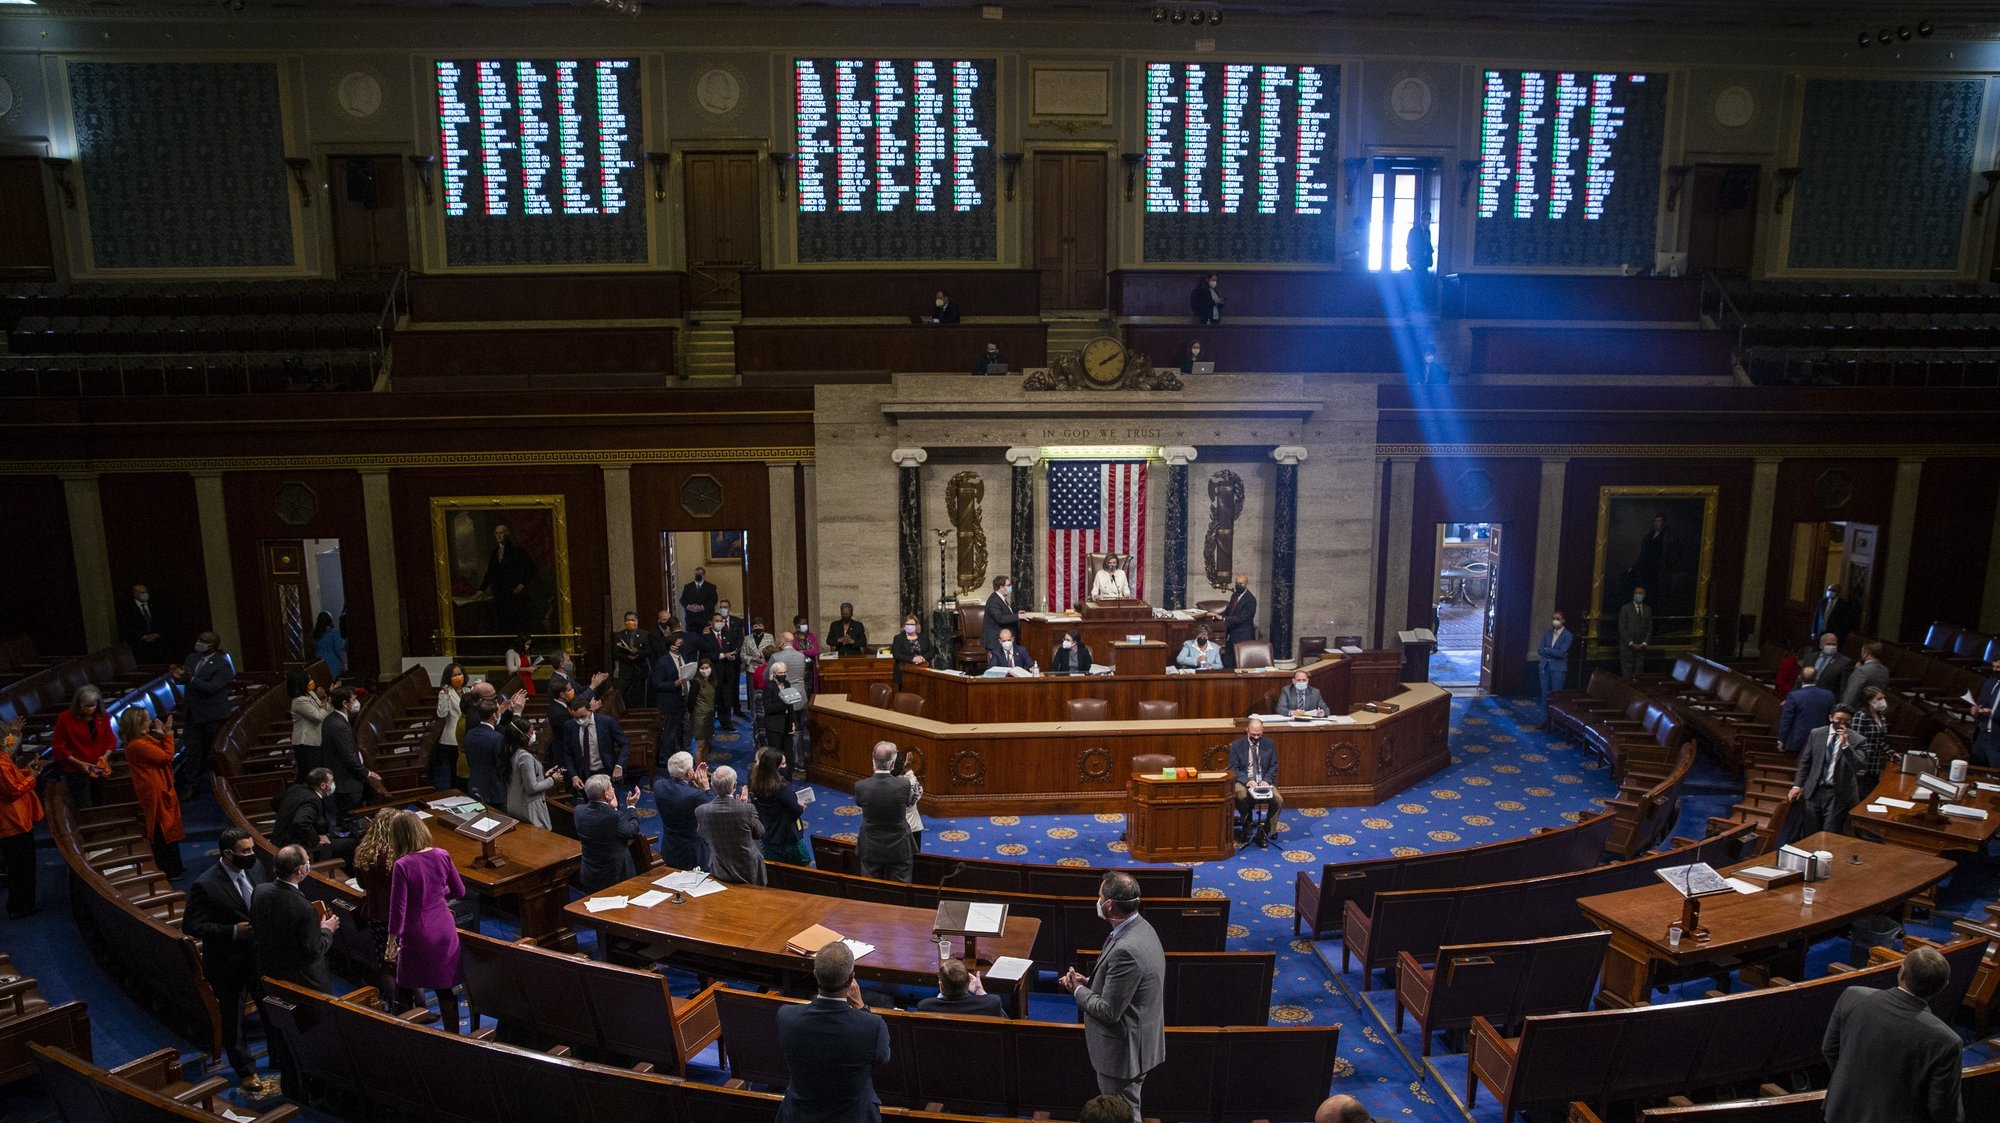 epa09066222 A view of the house chambers as Speaker of the House Nancy Pelosi presides over the House vote on the 1.9 trillion US dollars coronavirus relief plan on the House floor of the US Capitol in Washington, DC, USA,10 March 2021. The coronavirus relief package, passed on a party line vote, provides money for direct payments to individuals, state and local governments, vaccine distribution, jobless benefits and child tax credits.  EPA/SHAWN THEW